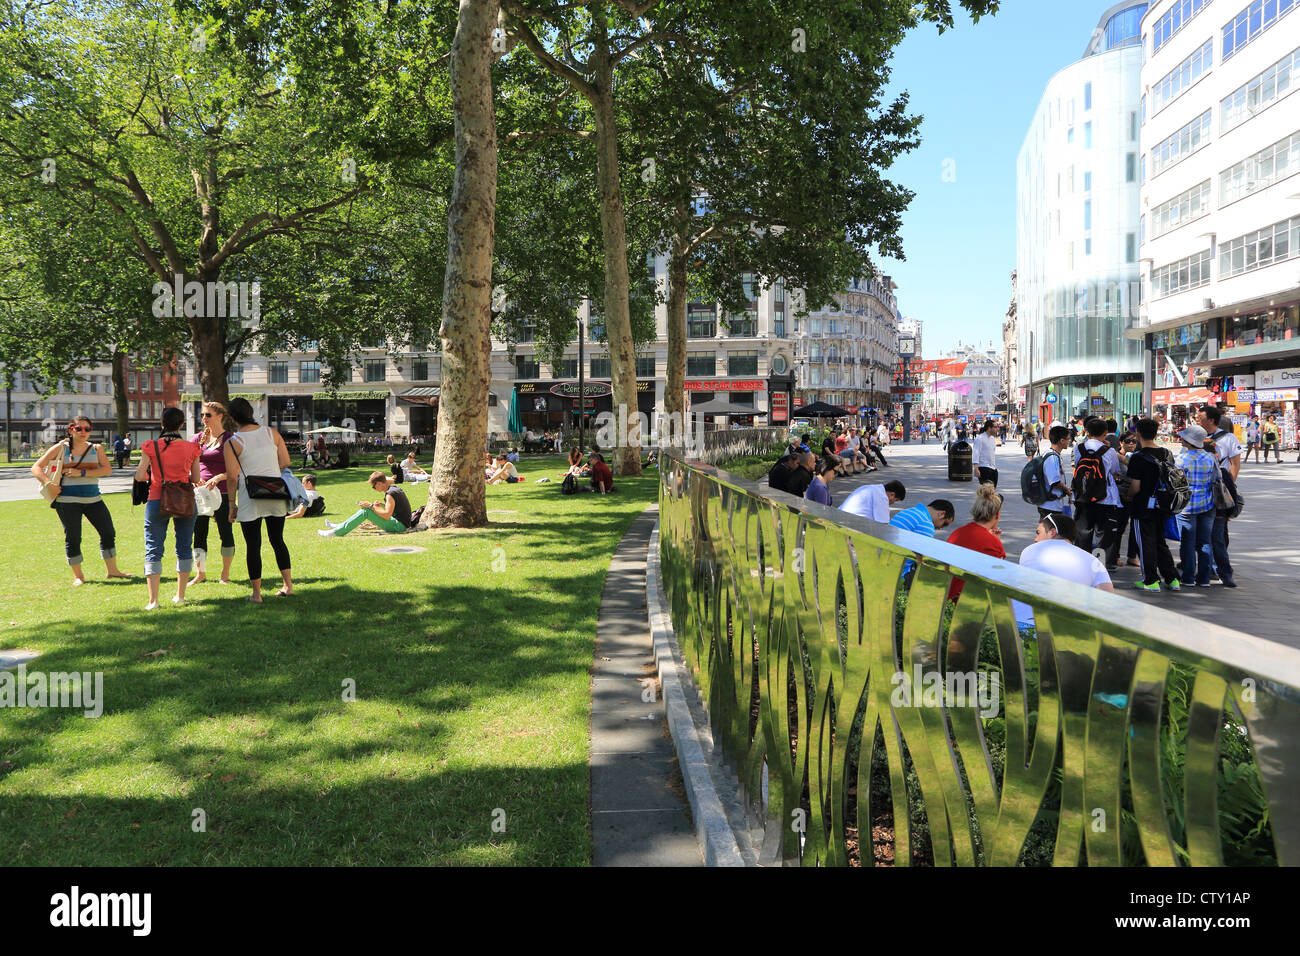 Leicester Square, reopened in 2012, in London's West End, England, UK - Stock Image